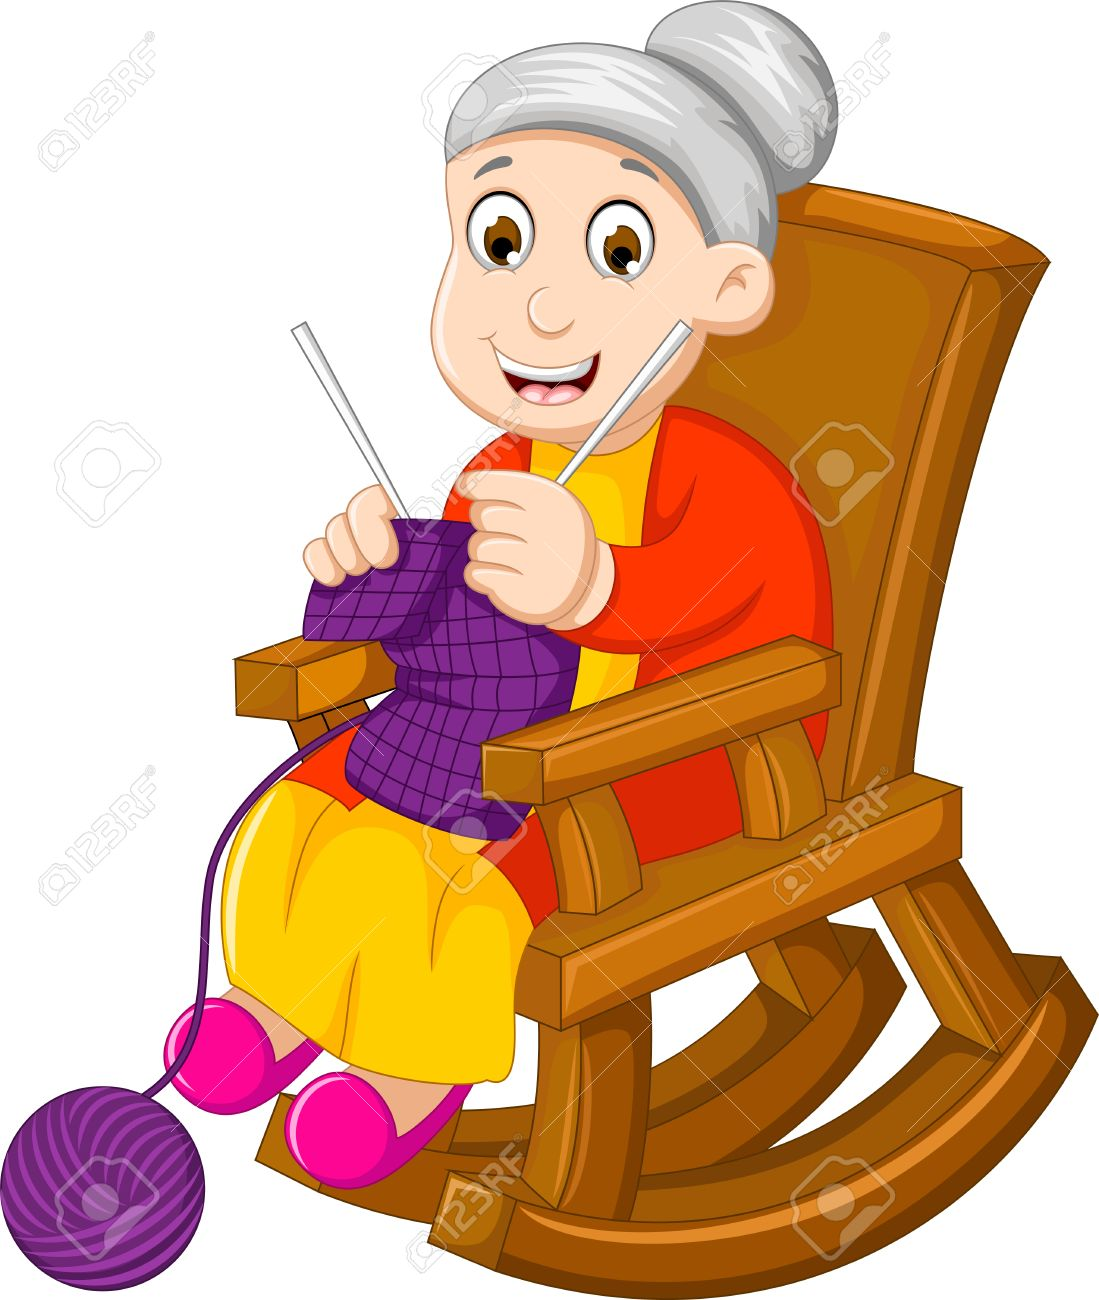 funny grandmother cartoon knitting in a rocking chair - 67754059